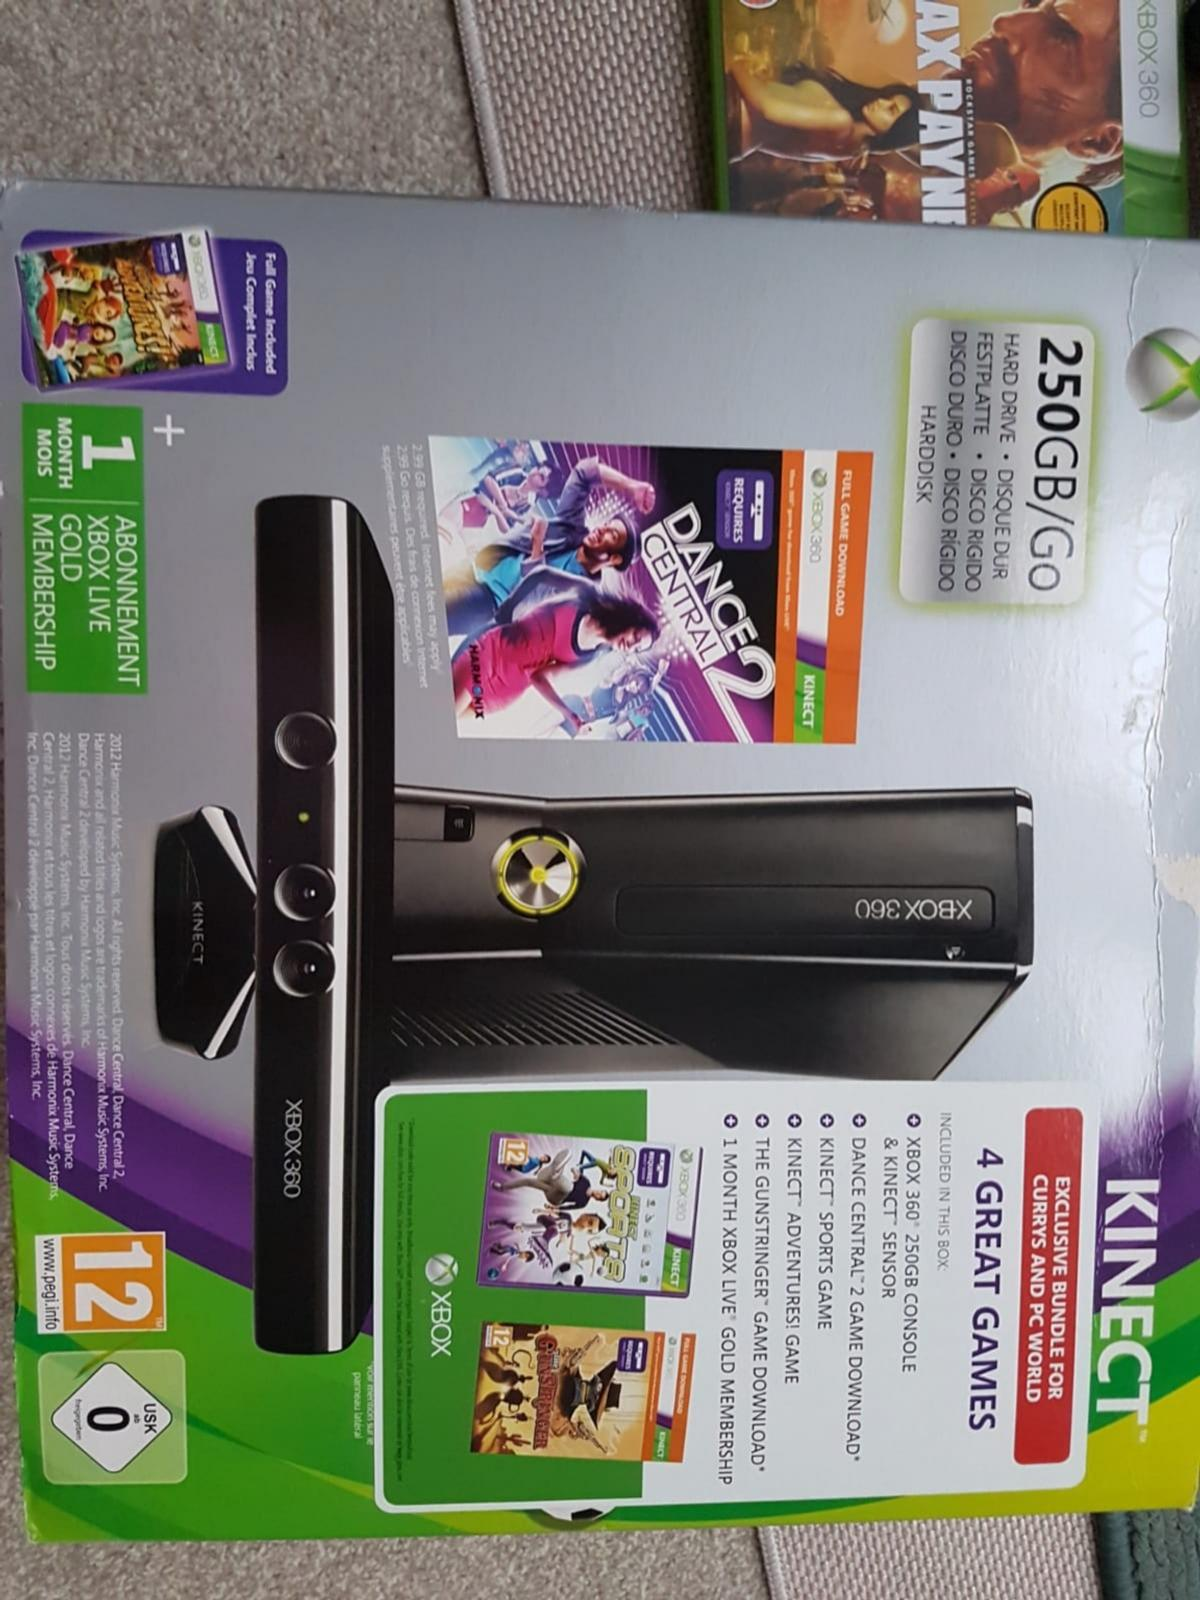 XBOX 360 KINECT, 6 GAMES + 2 CONTROLLERS